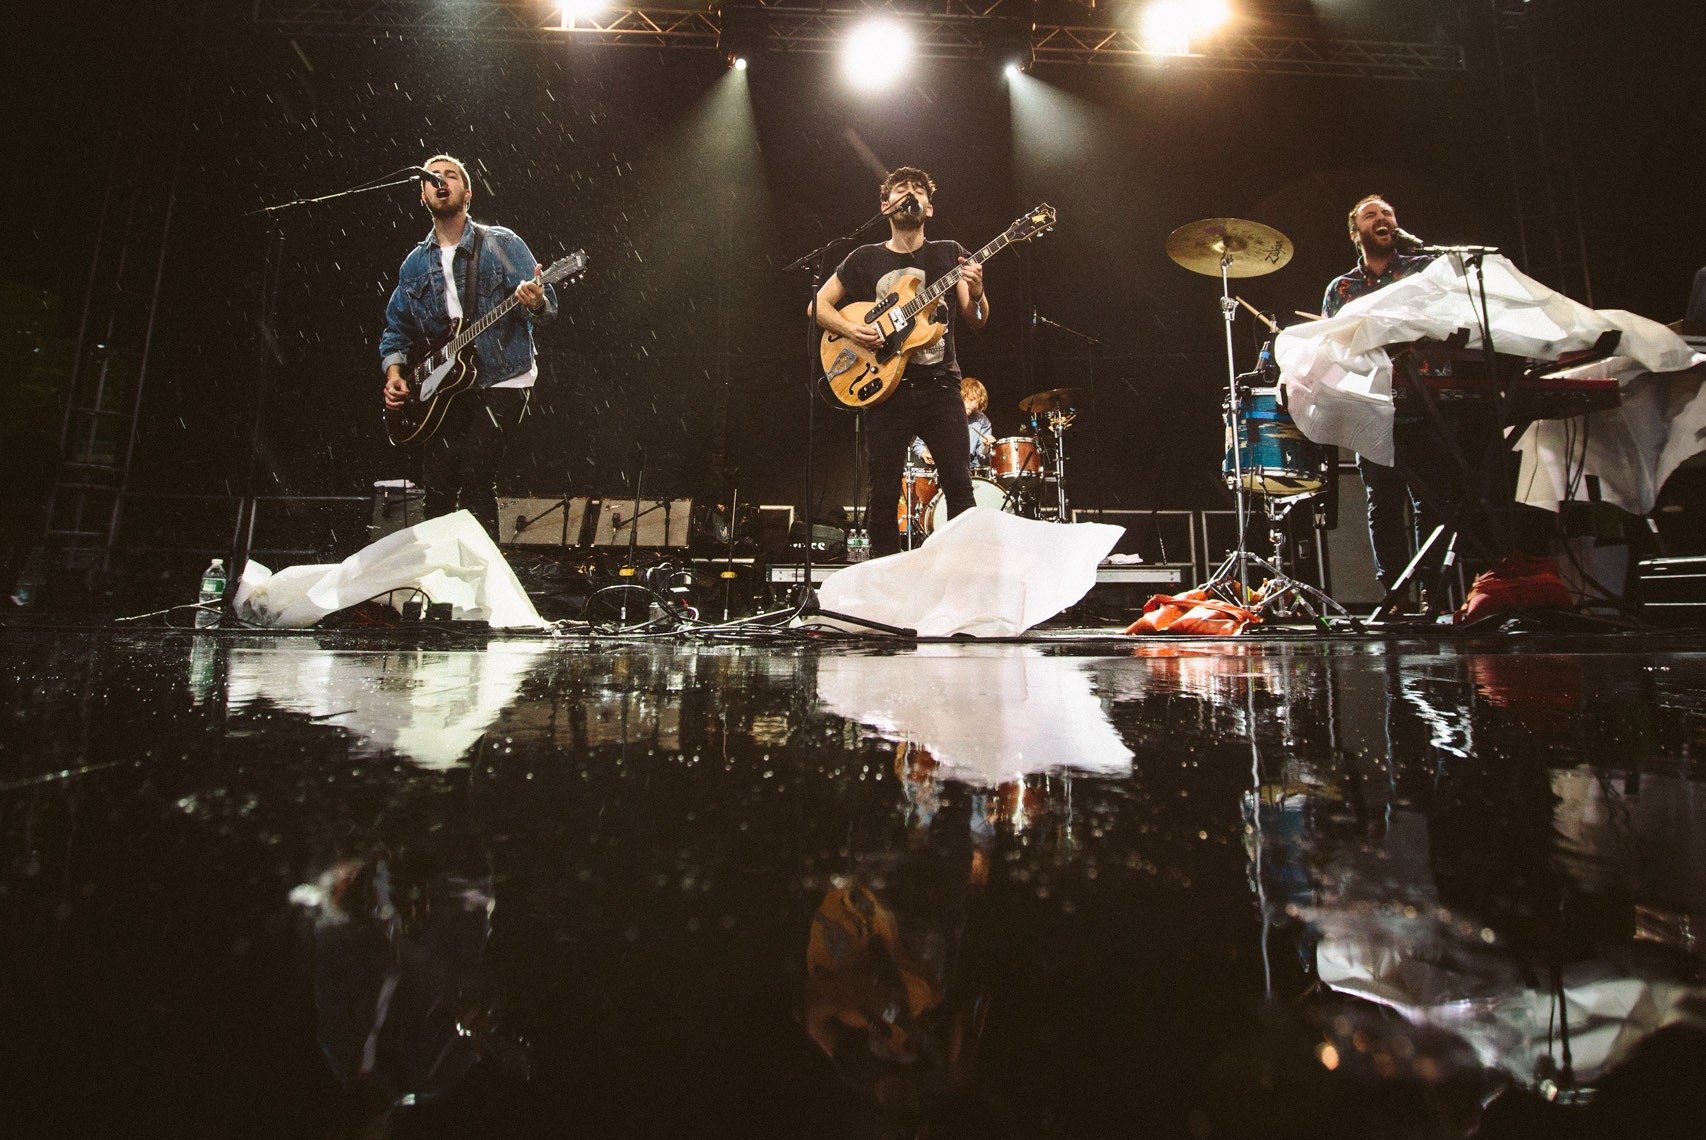 Local Natives at Governors ball playing in the Rain photographed by Forest Woodward